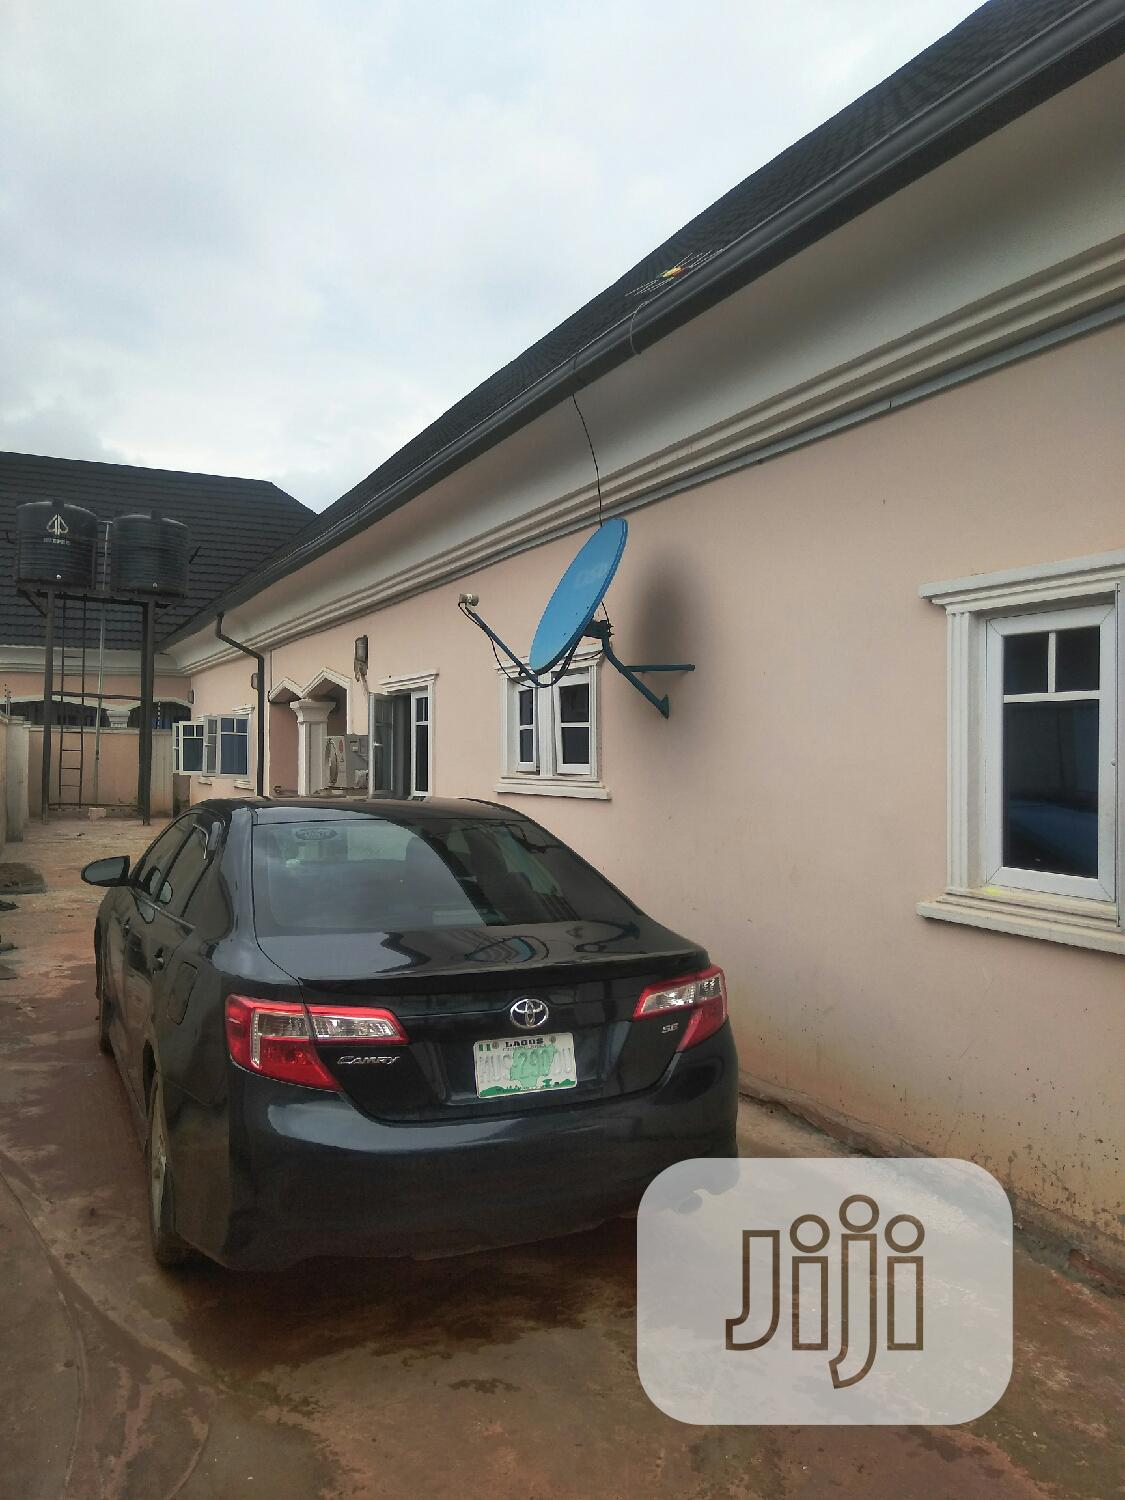 Ckean 3bedroom Flat, 2 Pple In Compound No Landlord